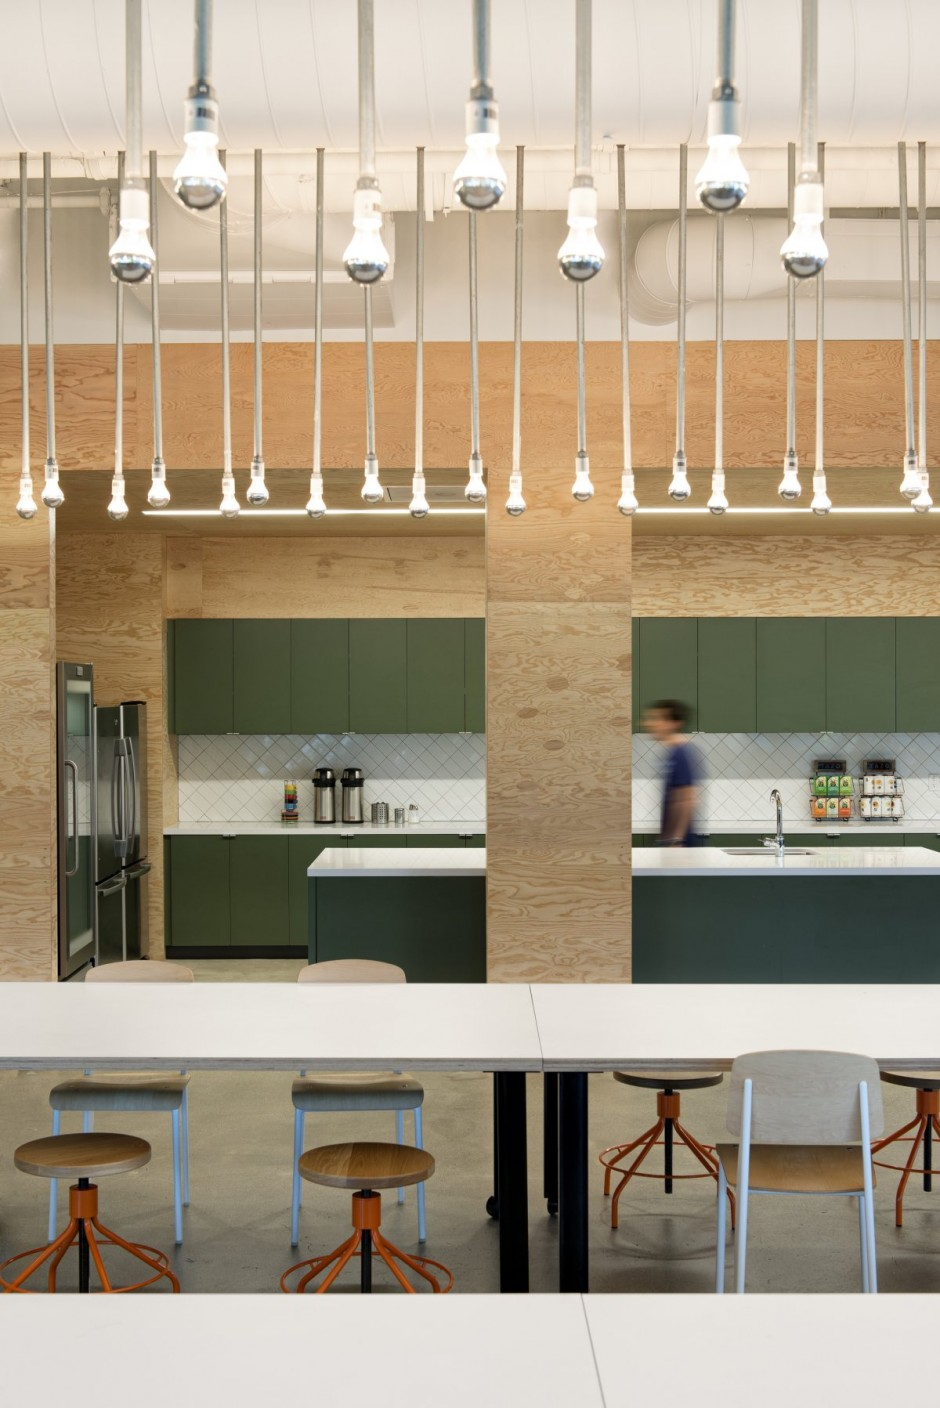 Office Kitchen Lighting - Evernote office interiors